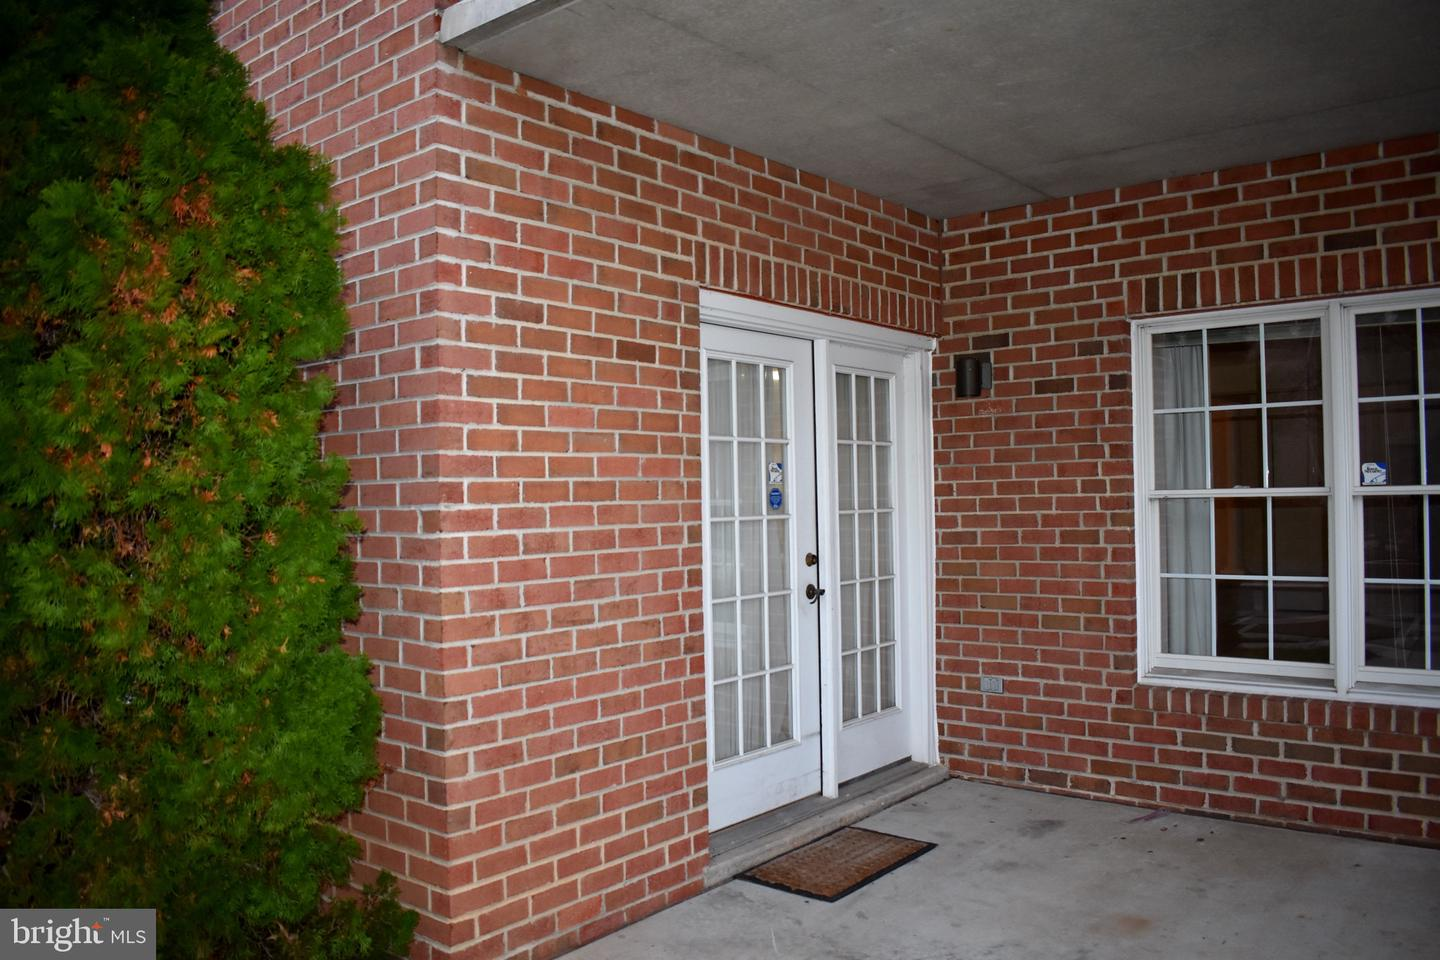 Property for Sale at Lutherville Timonium, Maryland 21093 United States